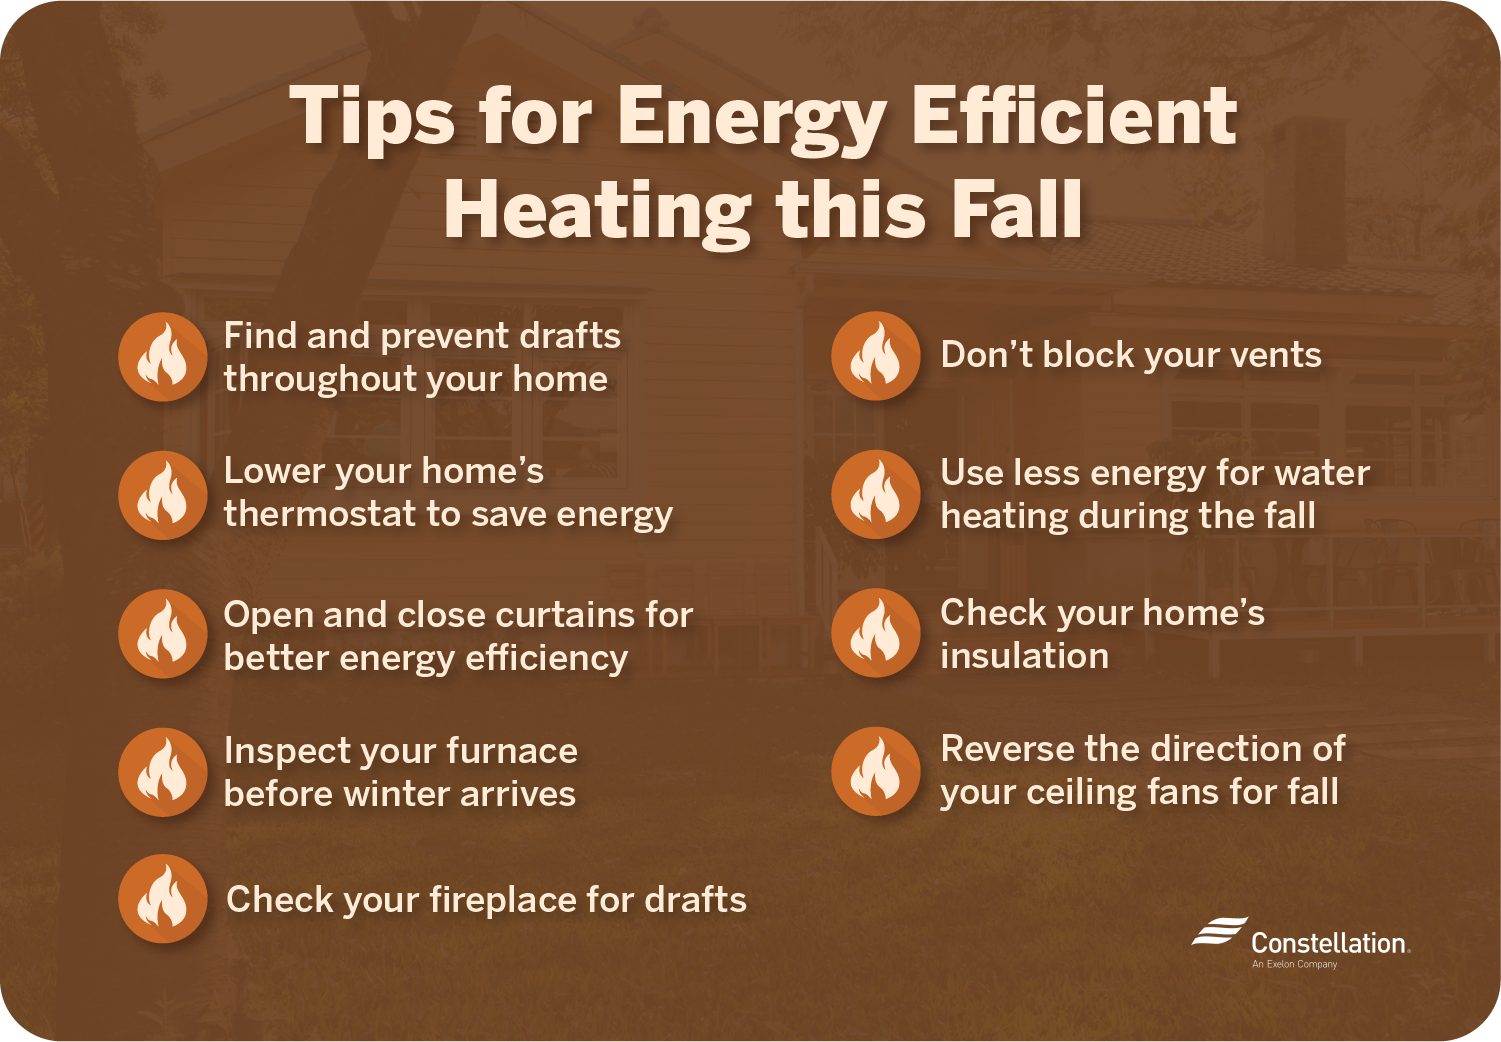 9 Tips for Energy Efficient Heating this Fall